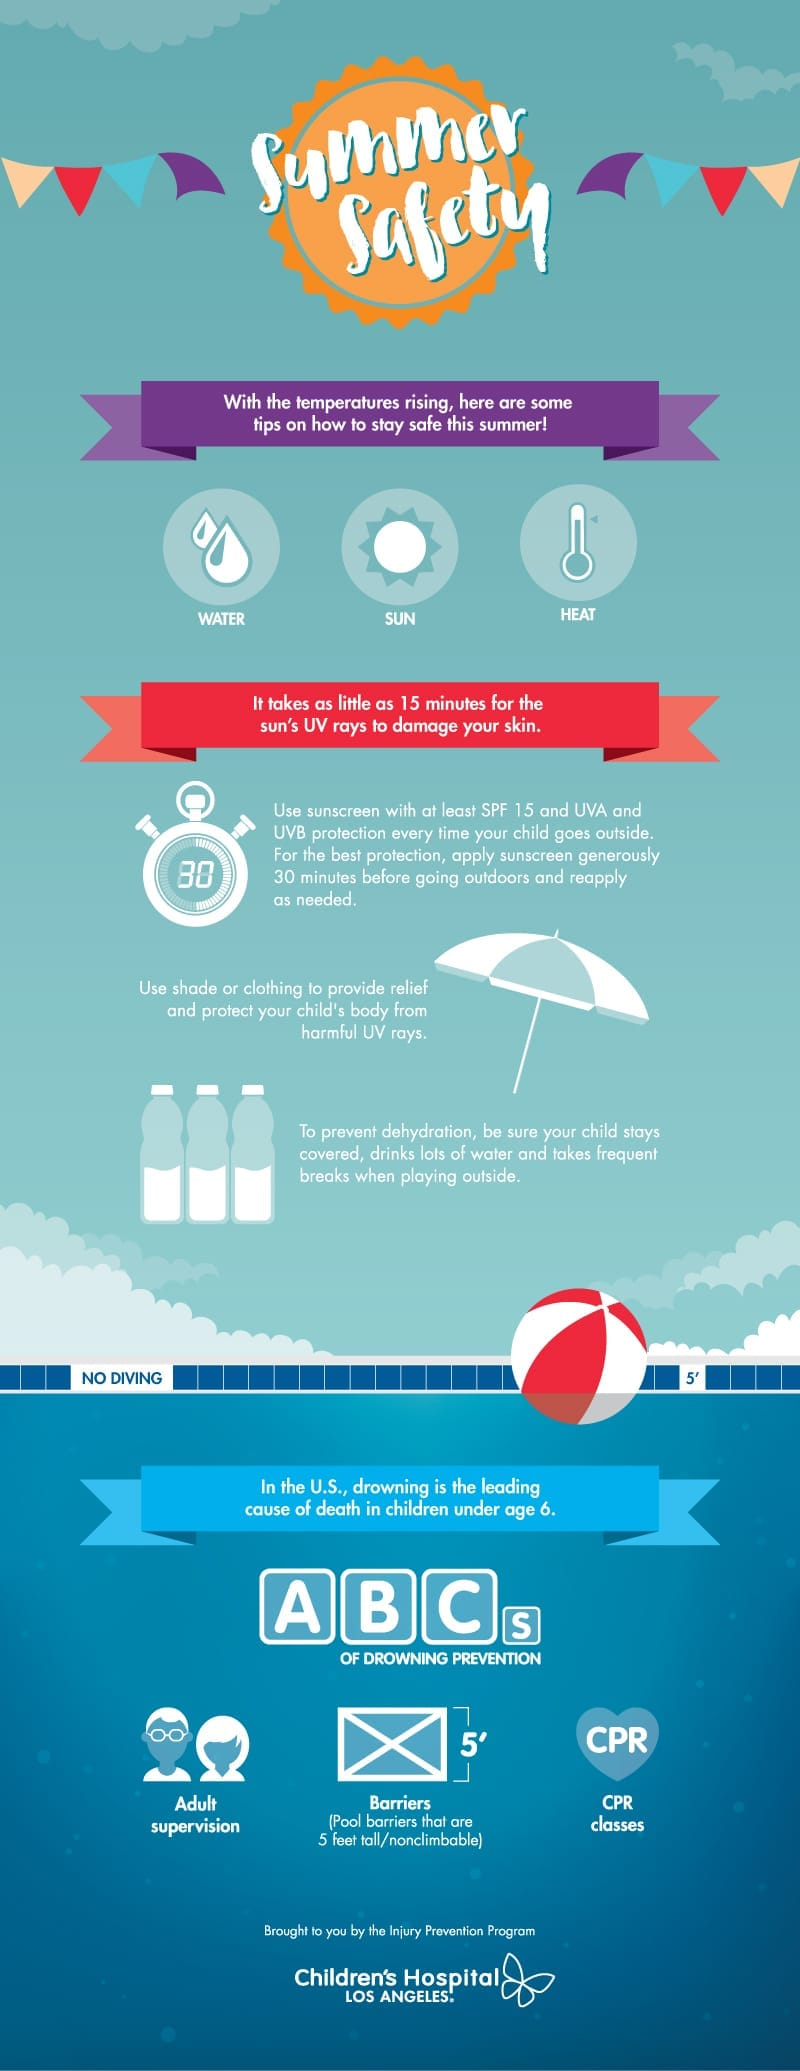 Newswise: chla-summer-safety-infographic.jpg